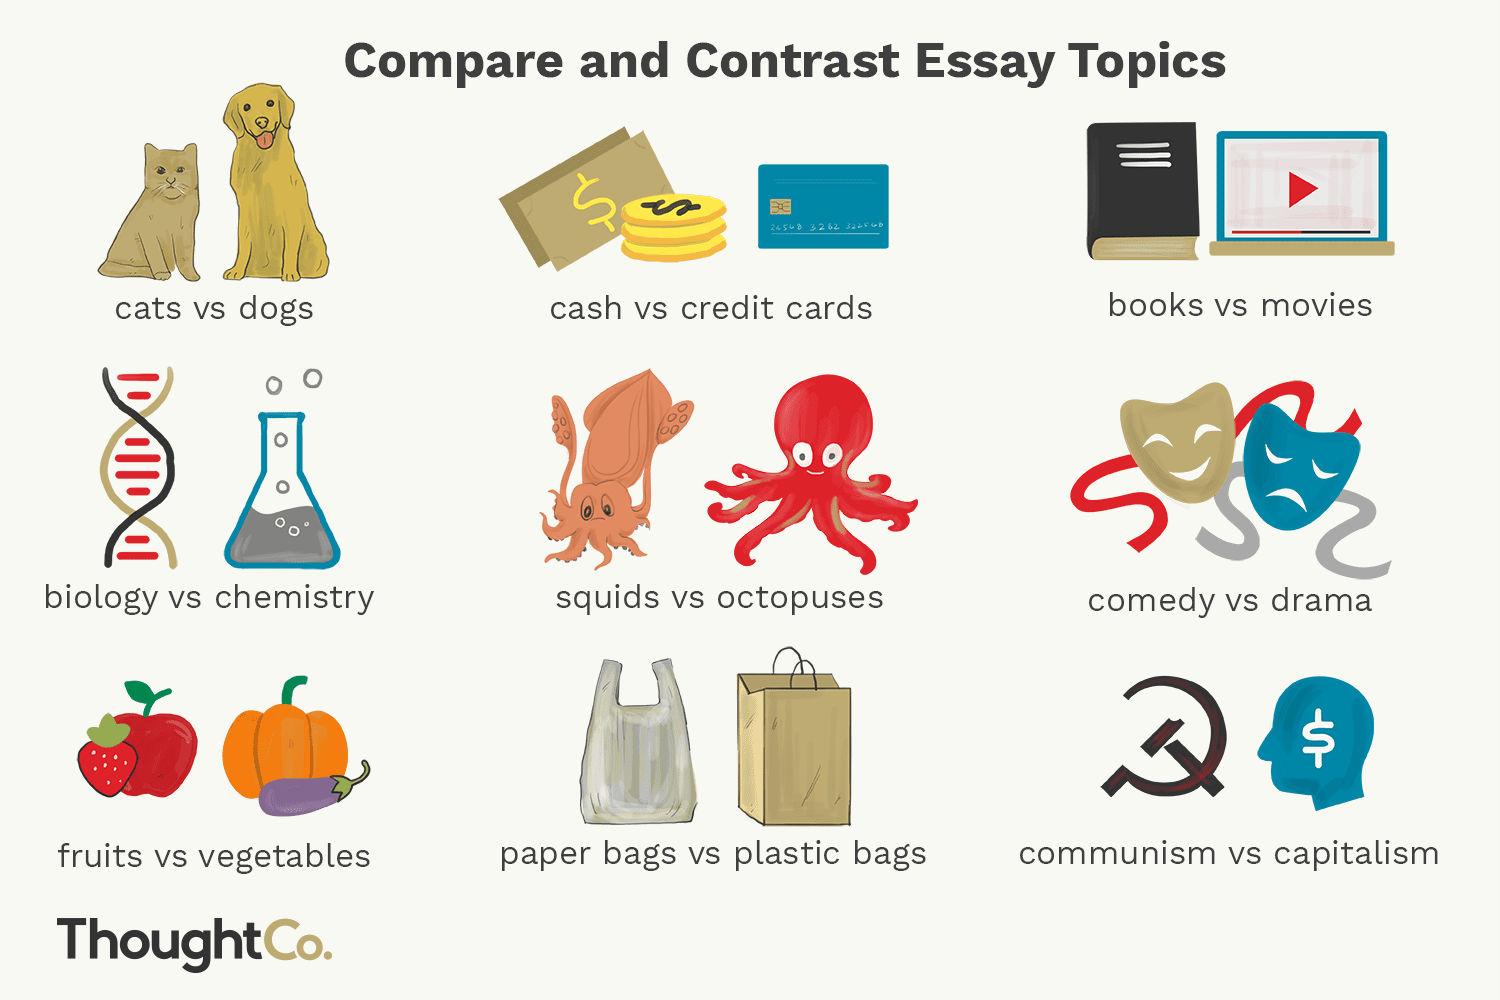 Compare and Contrast Essay Ideas for Students